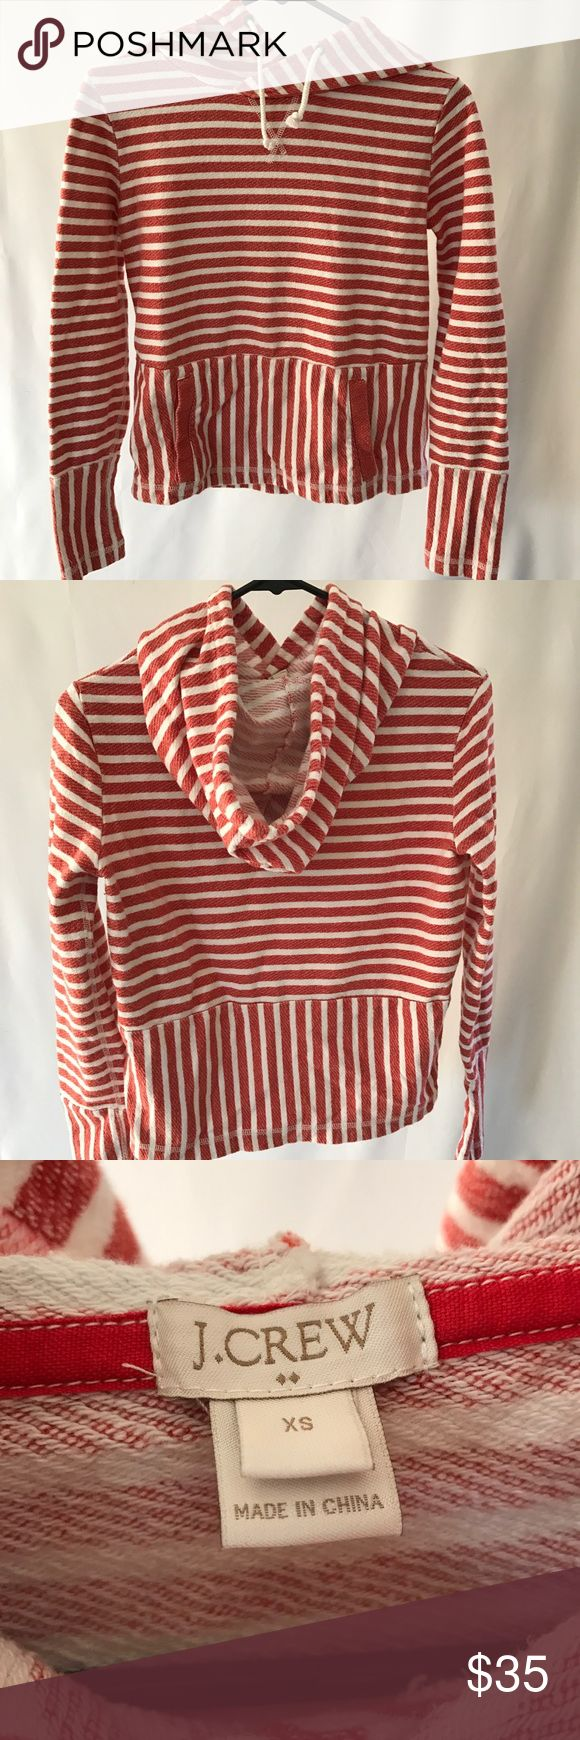 J.Crew Red and White Striped Hoodie An extra small warm and cozy J.Crew striped hoodie with a kangaroo pocket J. Crew Jackets & Coats